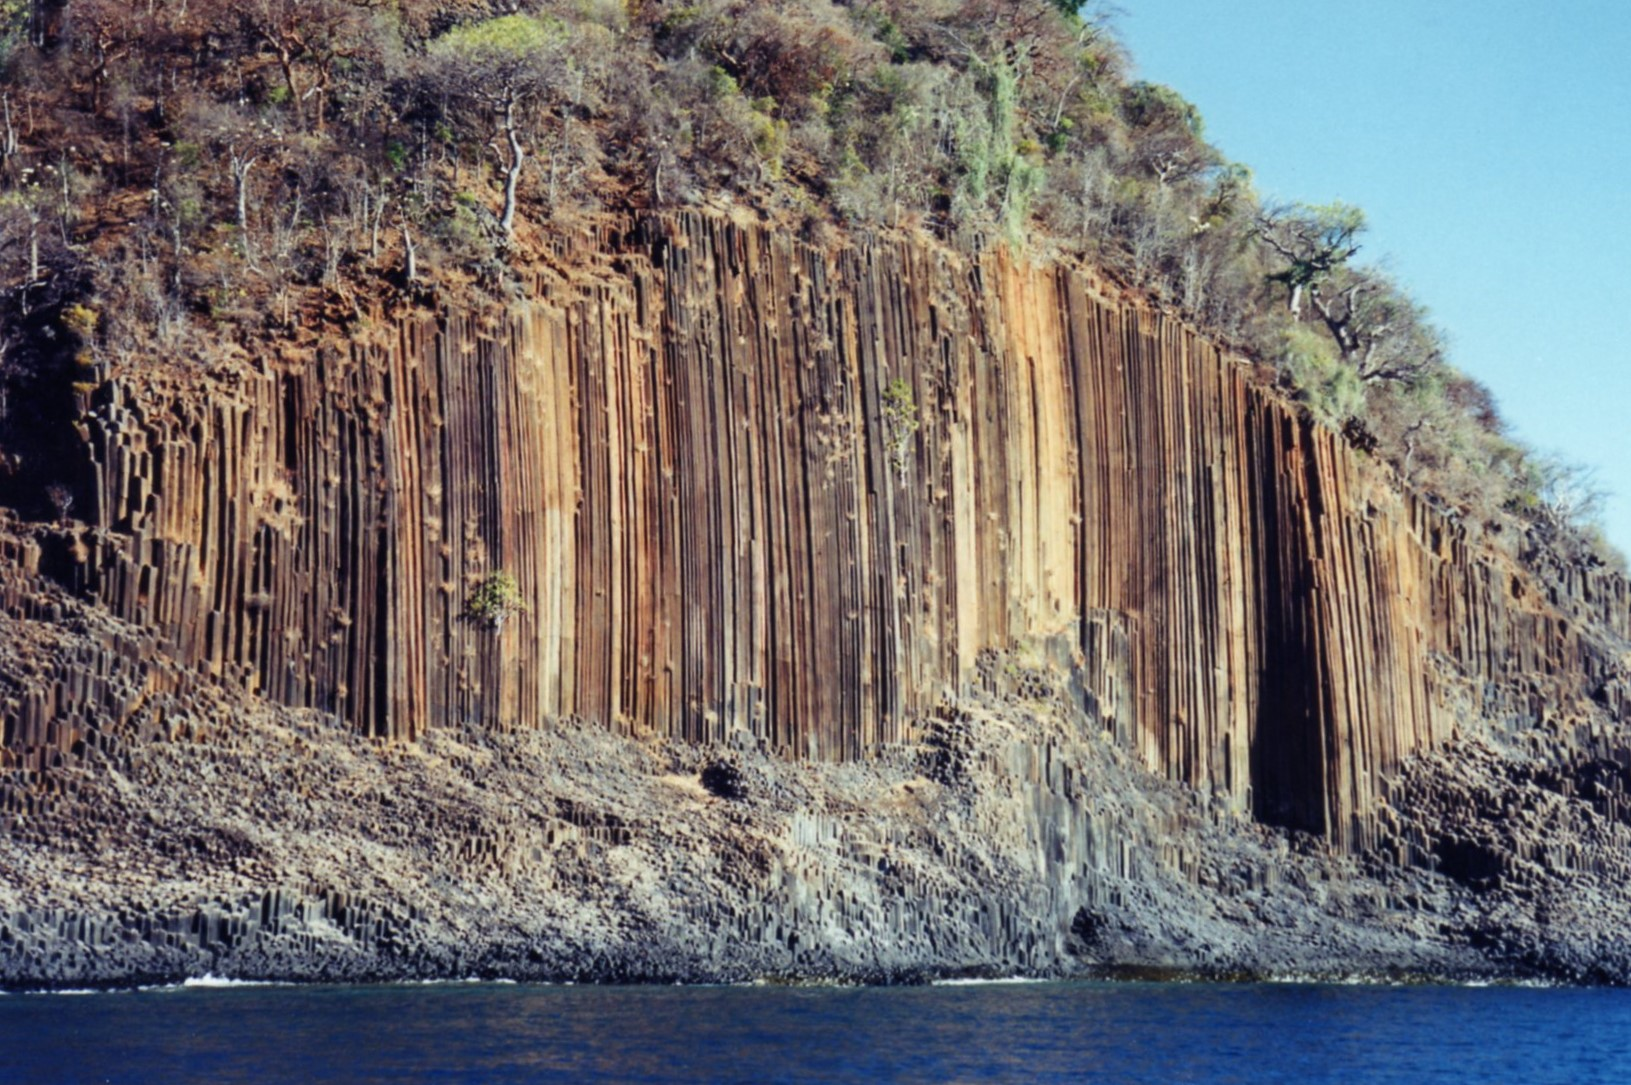 Interesting rock formations like organ pipes